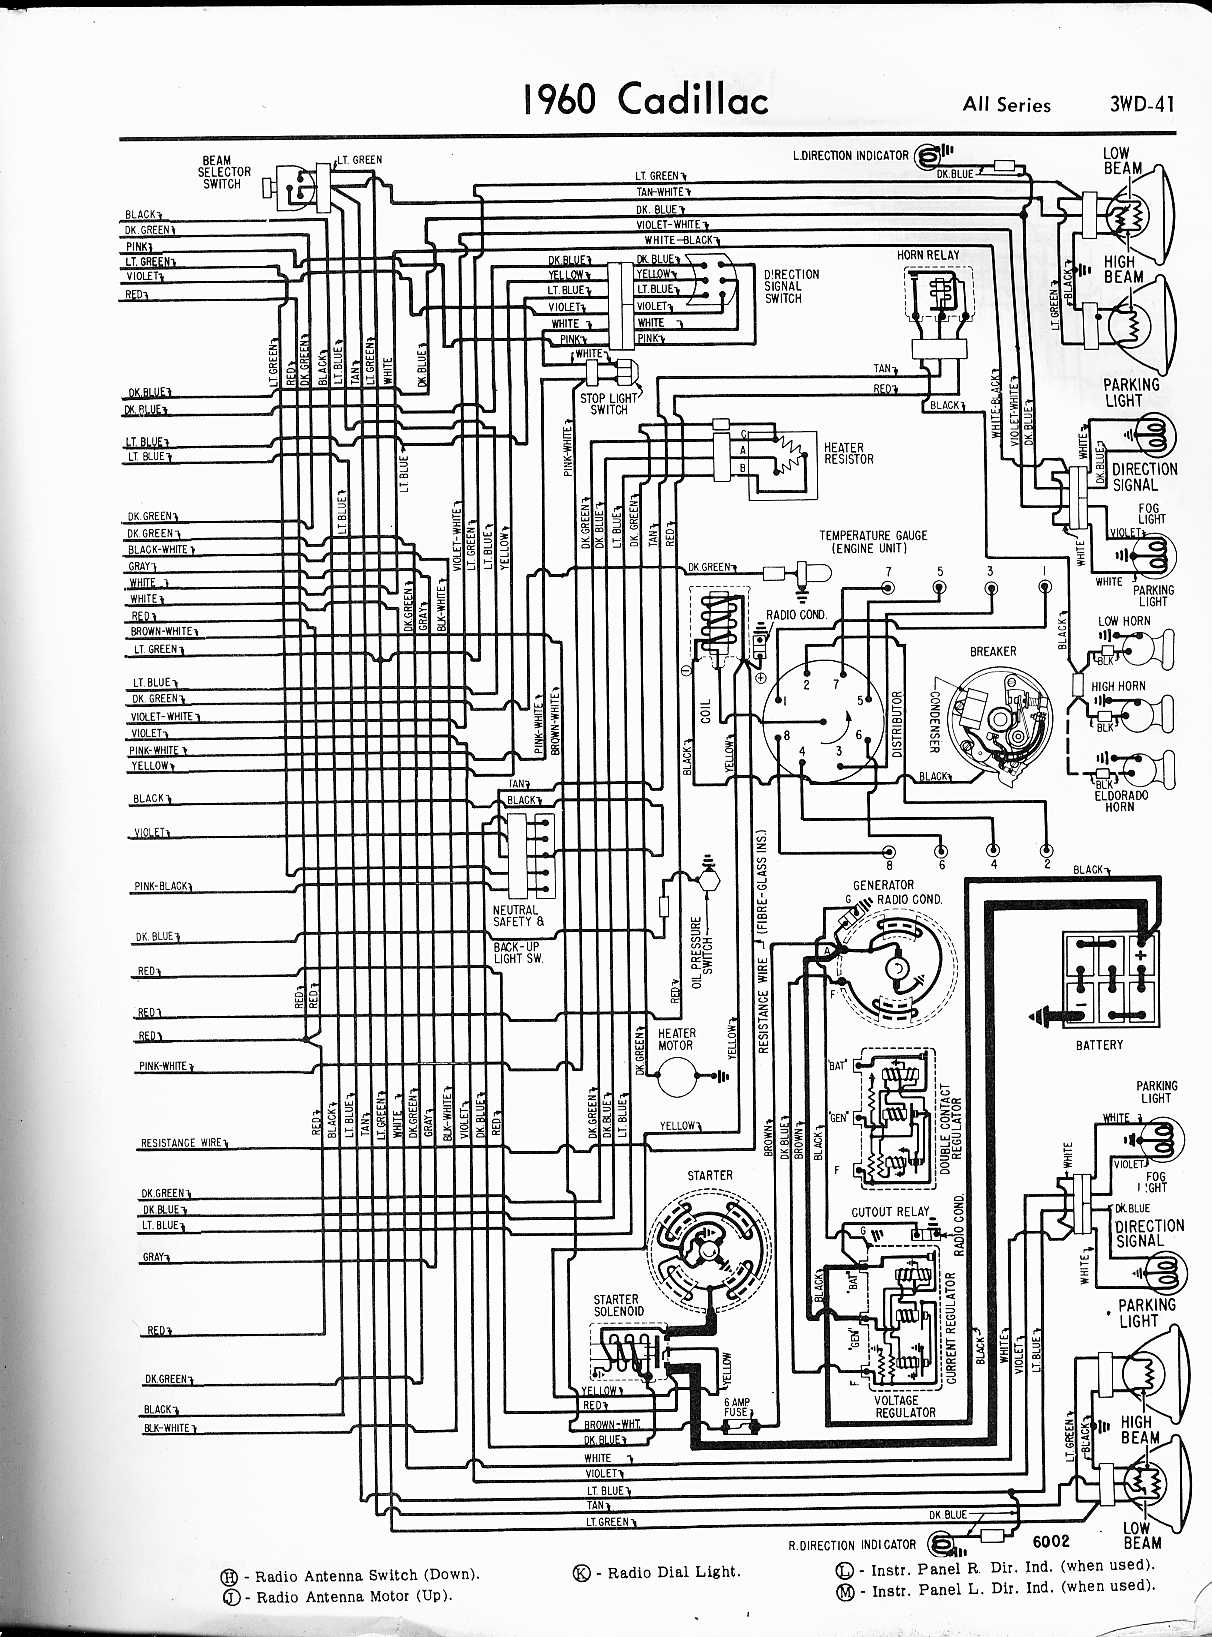 1969 Cadillac Deville Wiring Diagram Guide And Troubleshooting Of 2001 Diagrams 1957 1965 Rh Oldcarmanualproject Com 2005